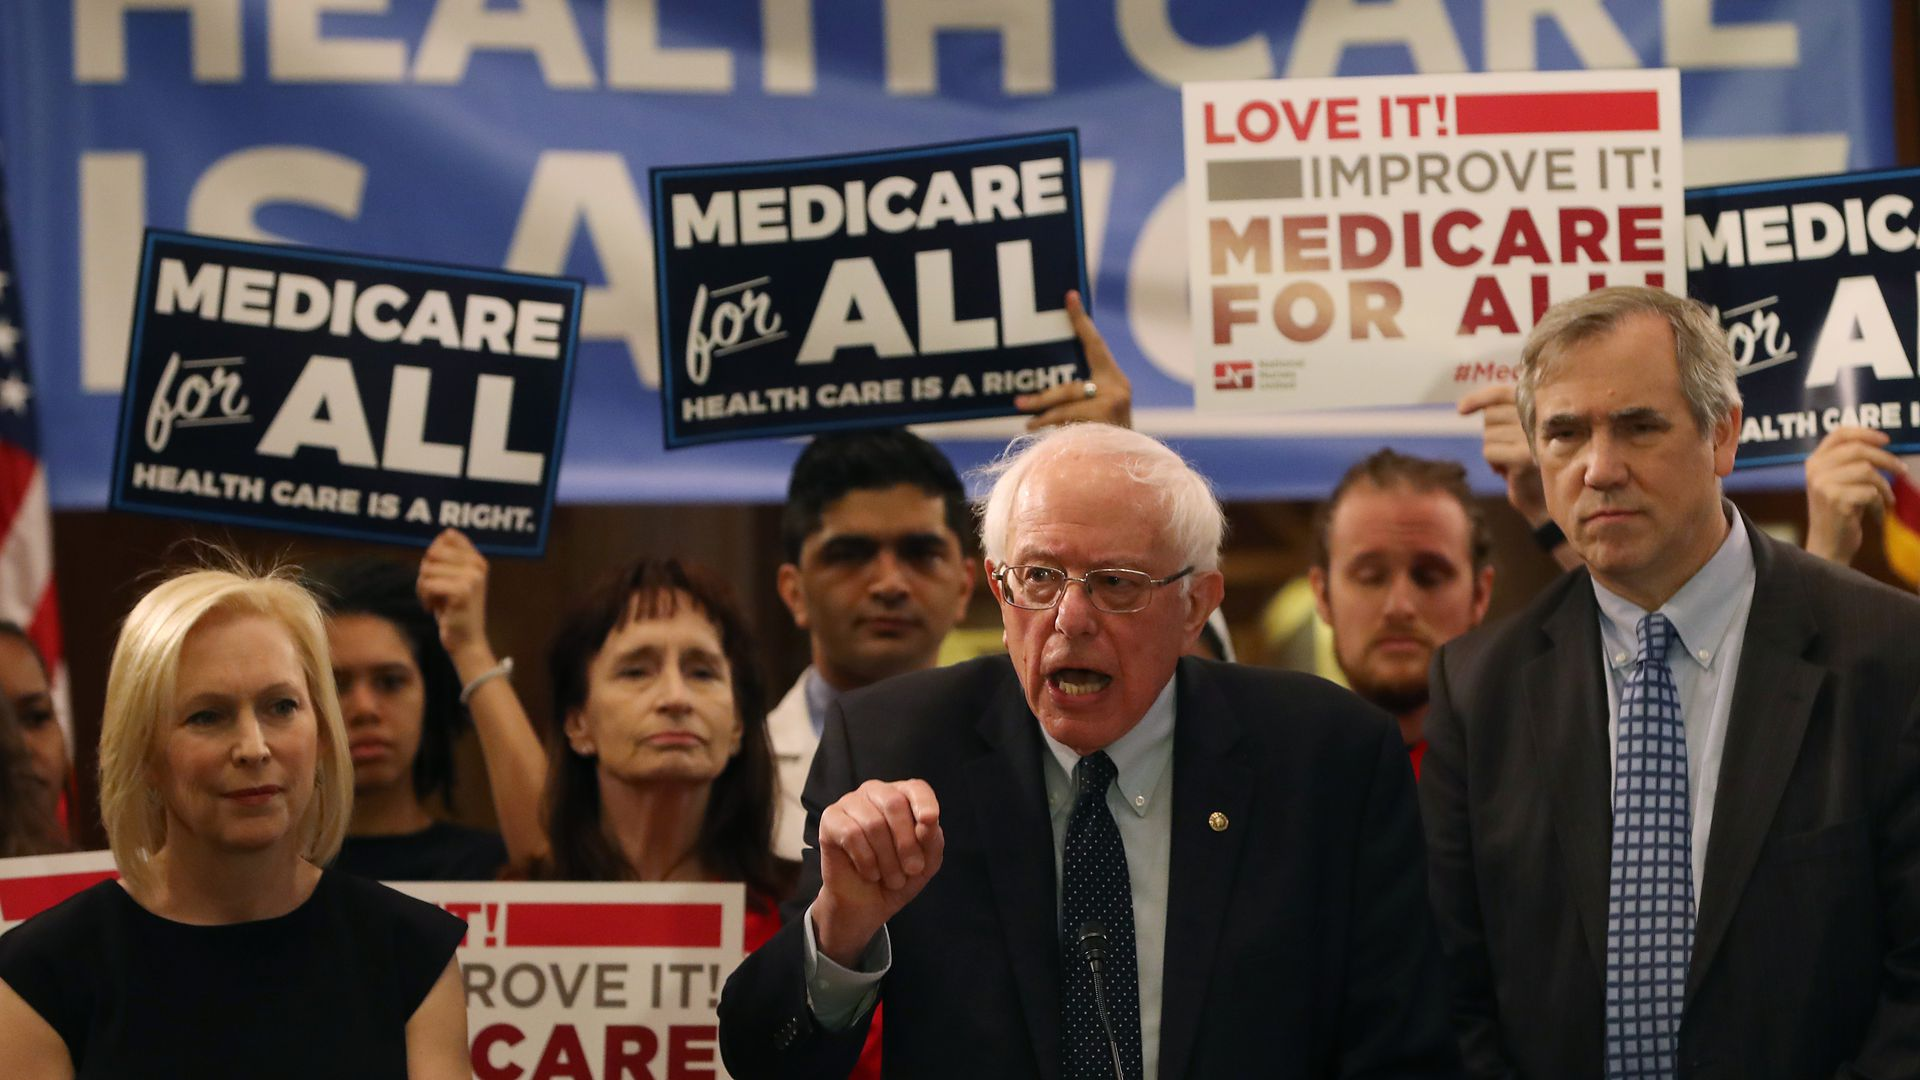 Sen. Bernie Sanders re-introducing Medicare for All